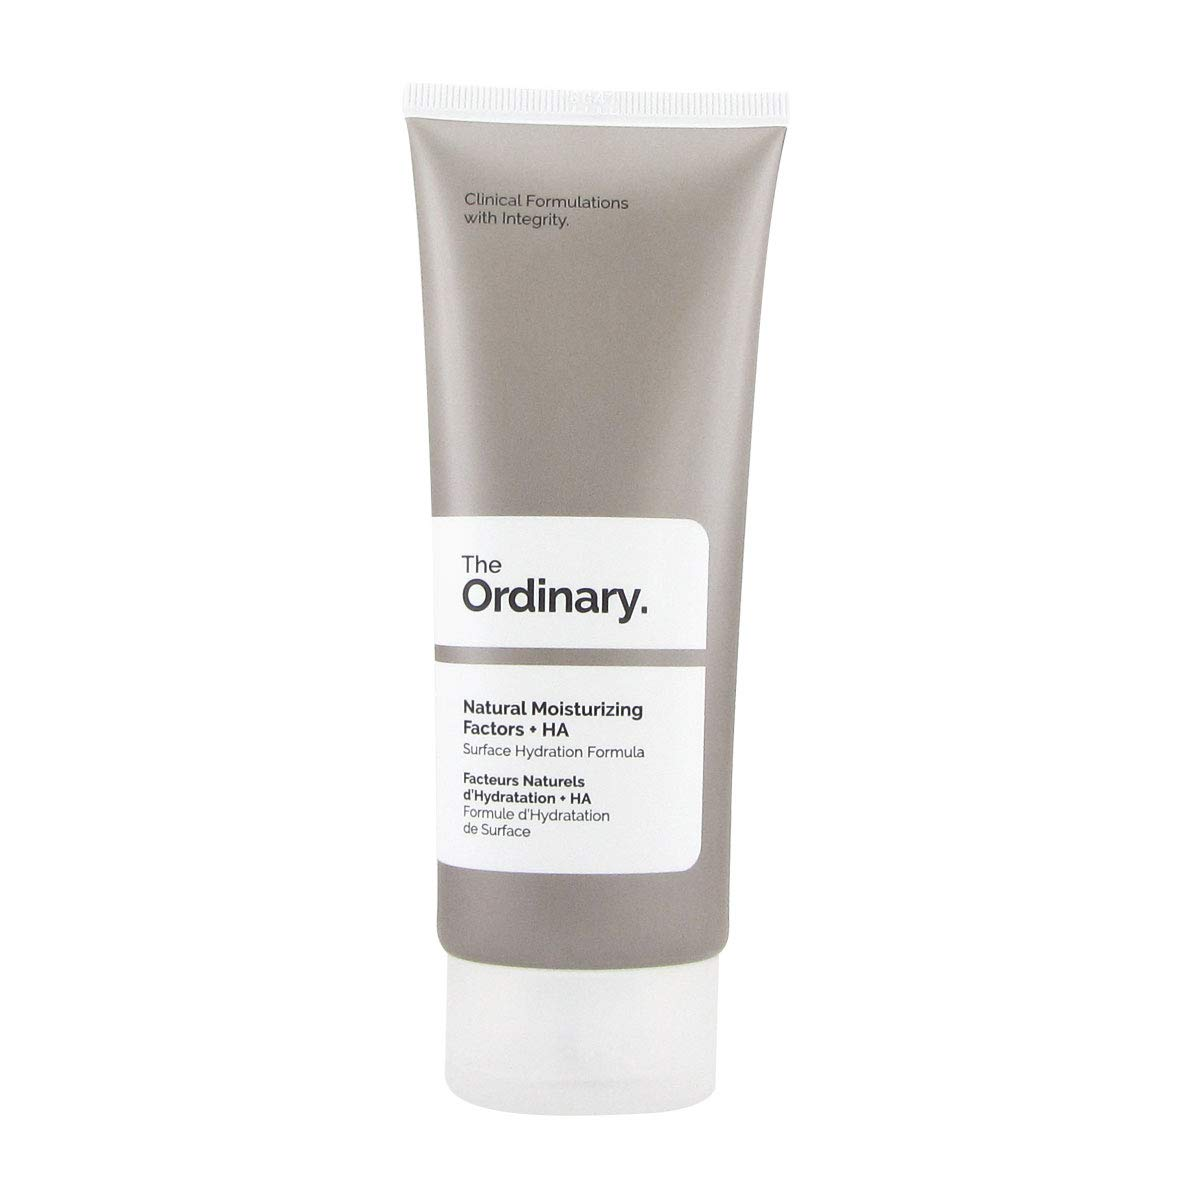 The-Ordinary-Natural-Moisturizing-Factors-HA-Surface-Hydration